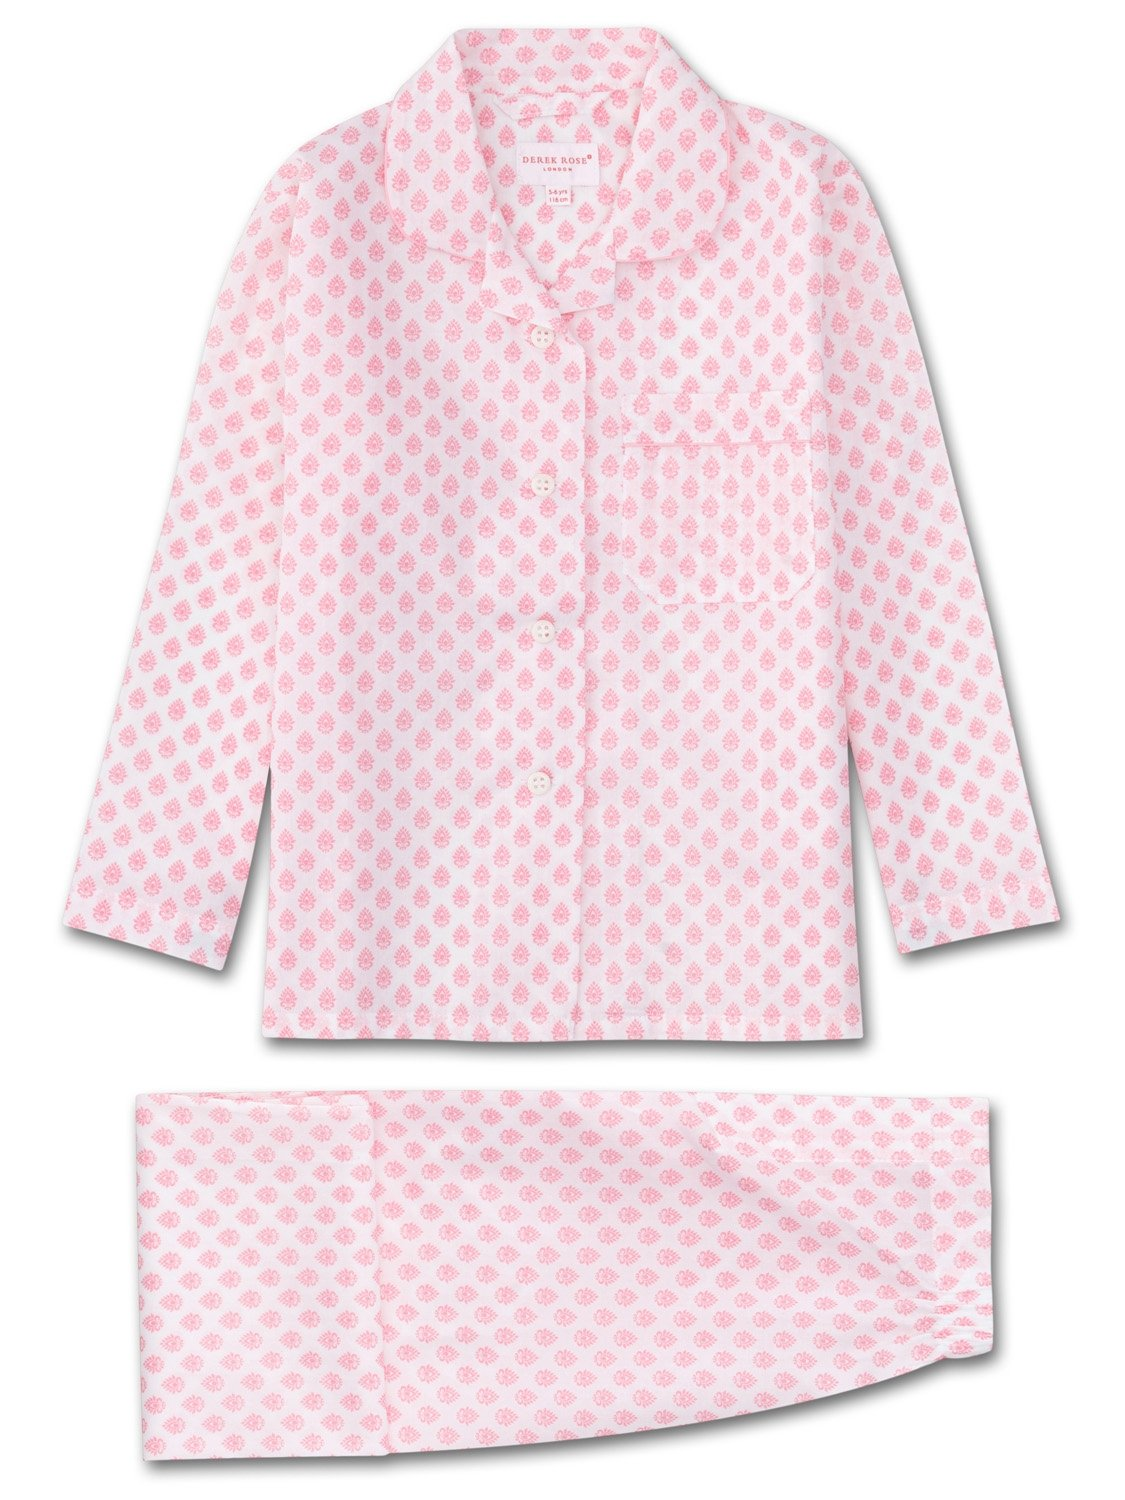 Girls' Pyjamas Ledbury 9 Cotton Batiste White